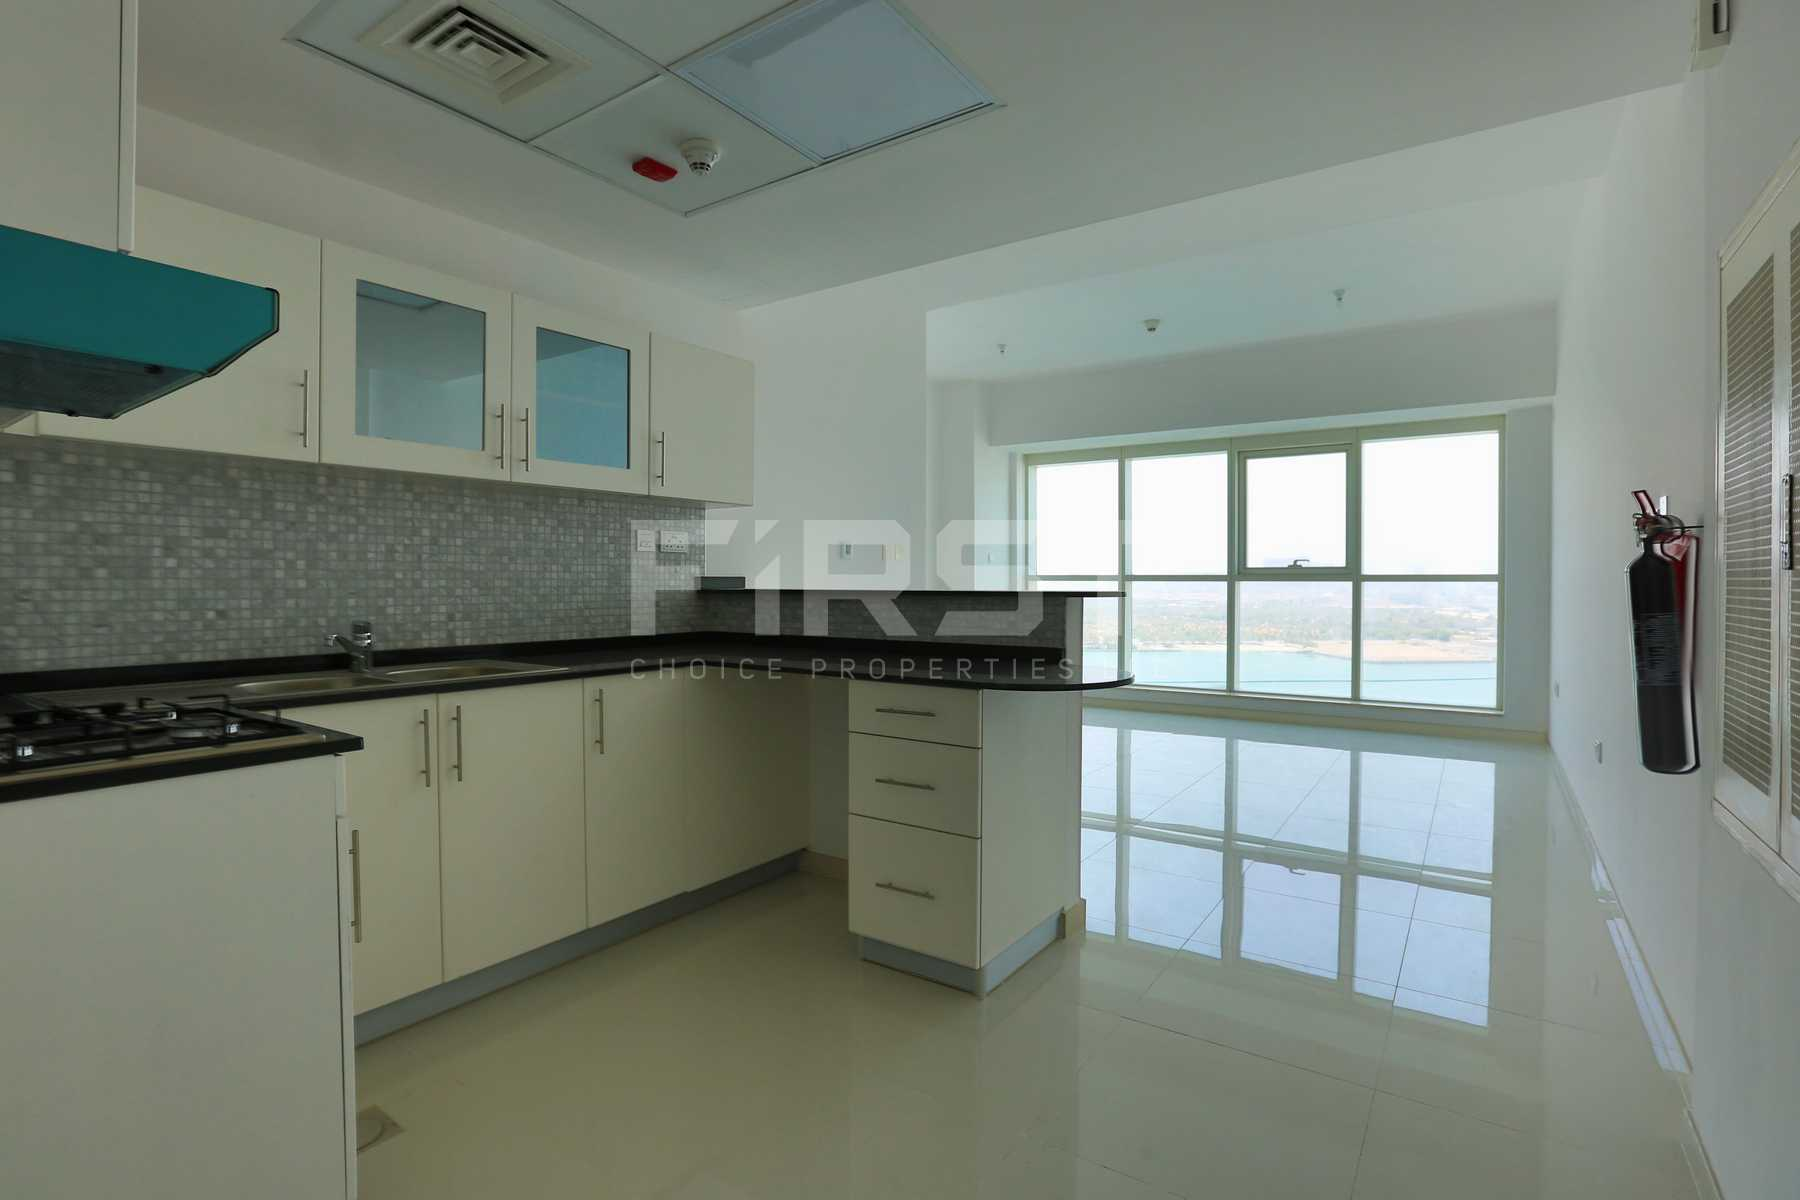 Internal Photo of 2 Bedroom Apartment in Marina bay by Damac Najmat Abu Dhabi Al Reem Island Abu Dhabi UAE (2).jpg